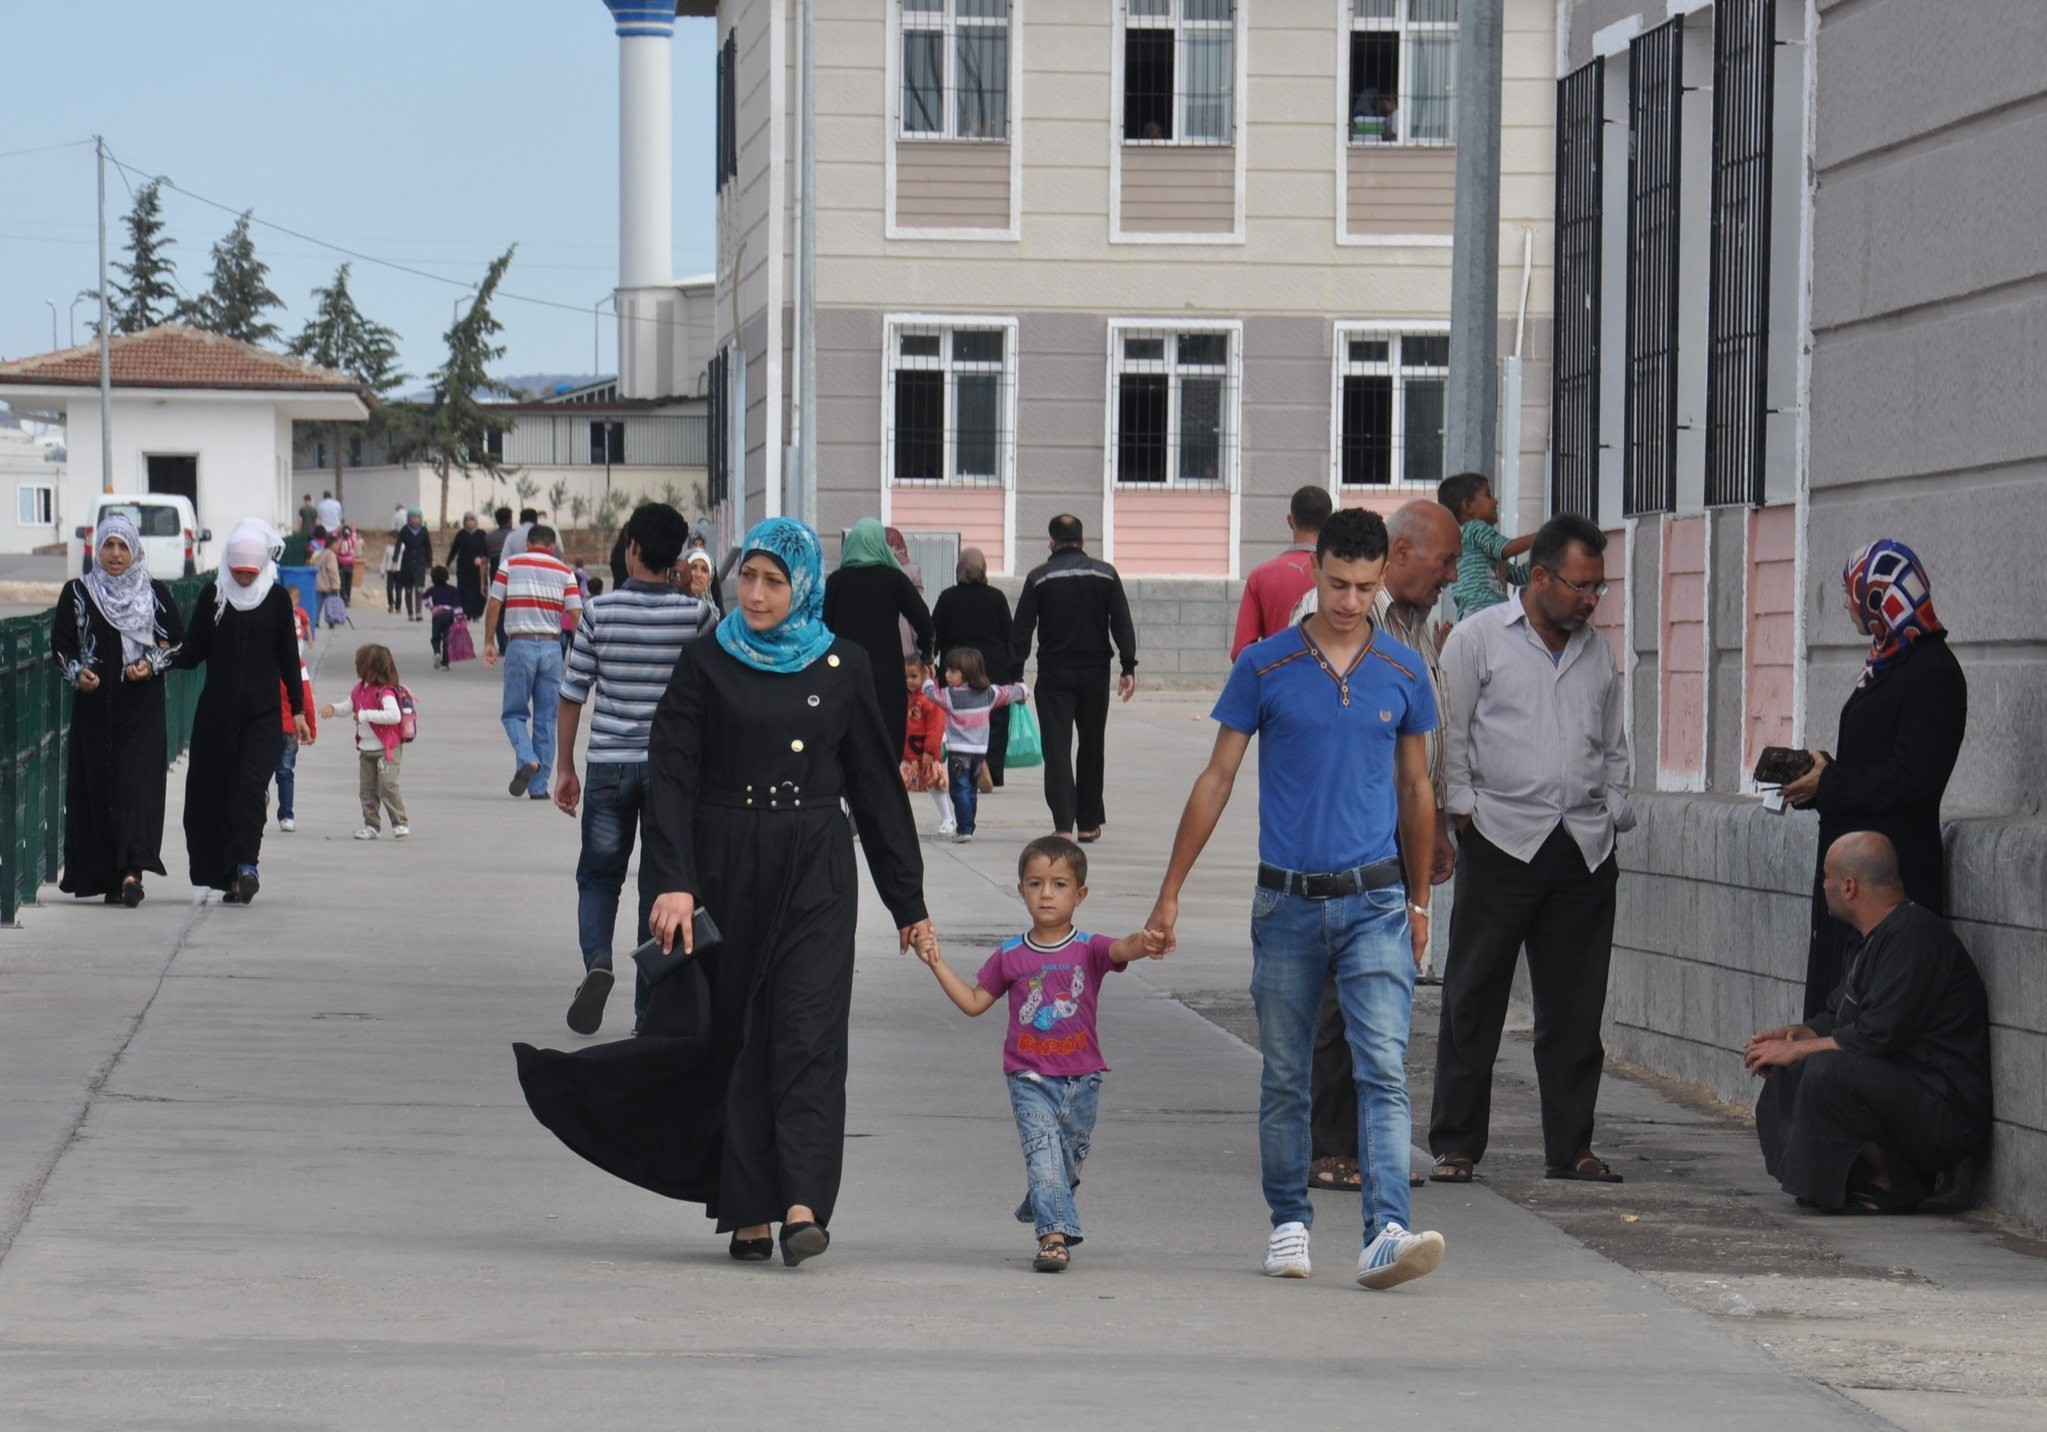 Located in southeastern Turkey near the Syrian border, Kilis has more than 120,000 Syrian refugees, exceeding its total Turkish population. (AA Photo)